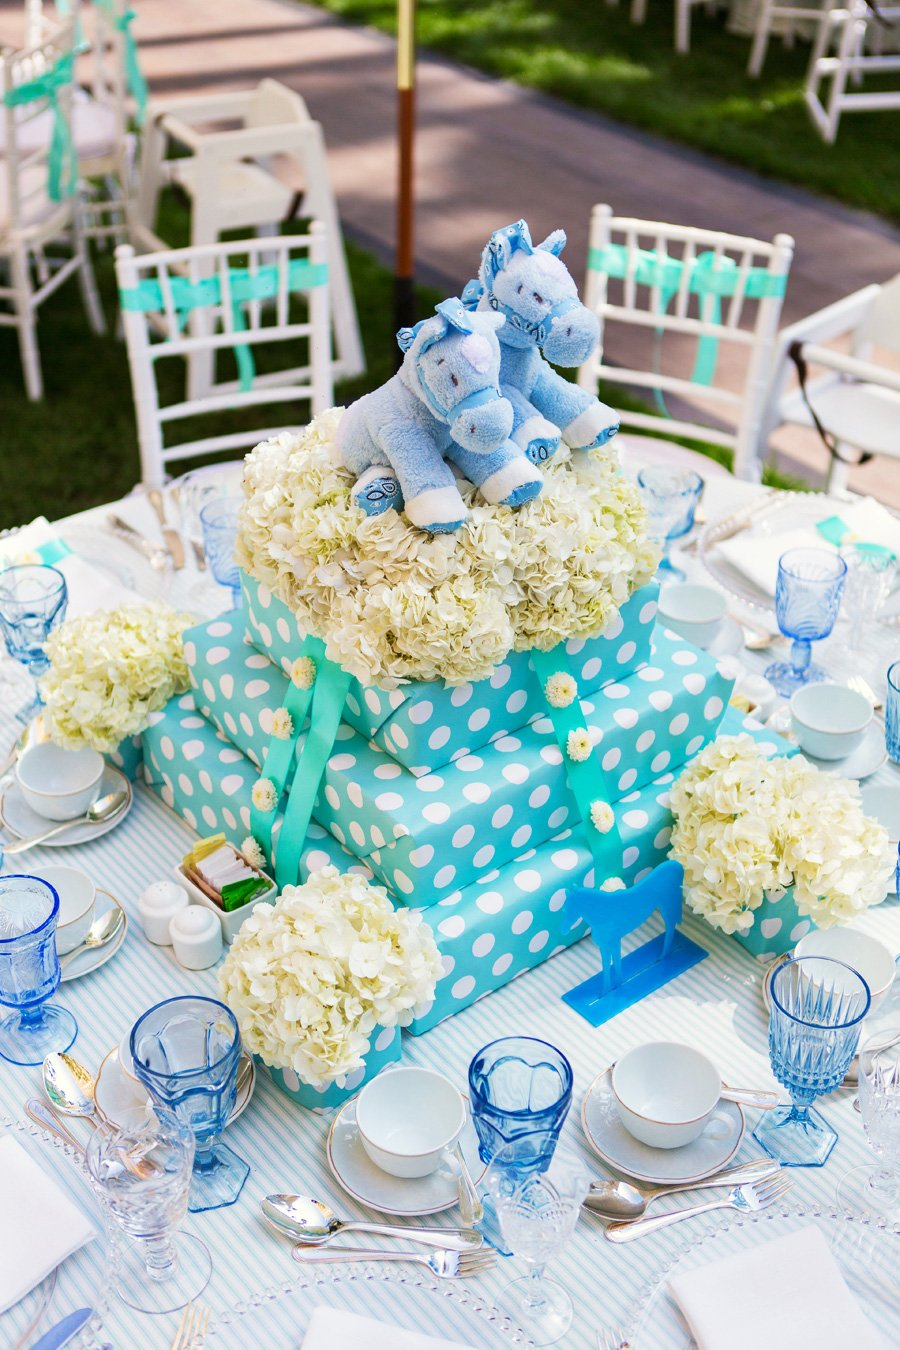 Twins birthday party centerpieces